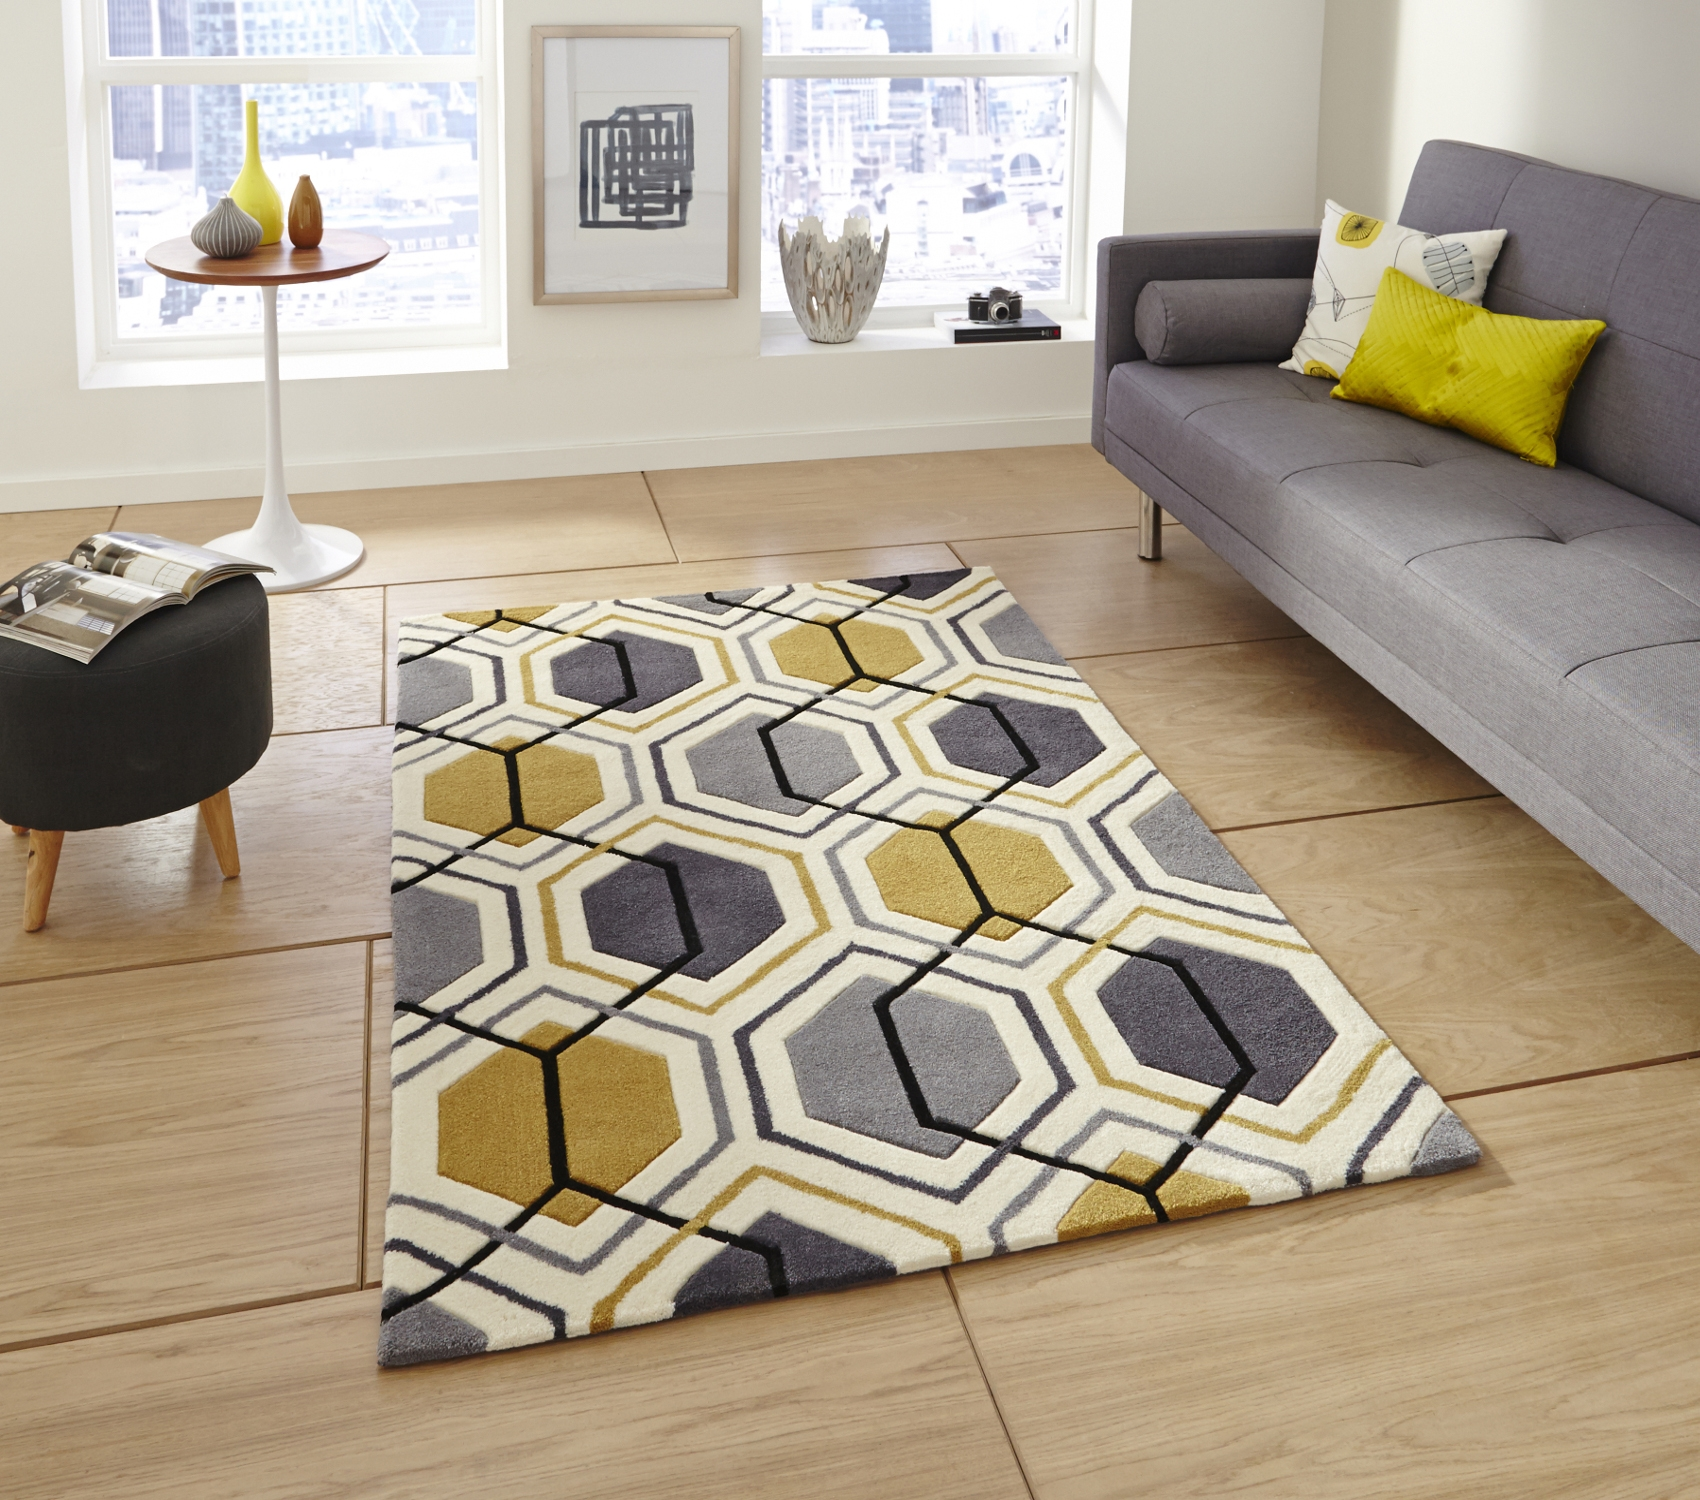 Hong Kong Hexagon Rug 100 Acrylic Hand Tufted Large Geometric For Large Geometric Rugs (View 10 of 15)